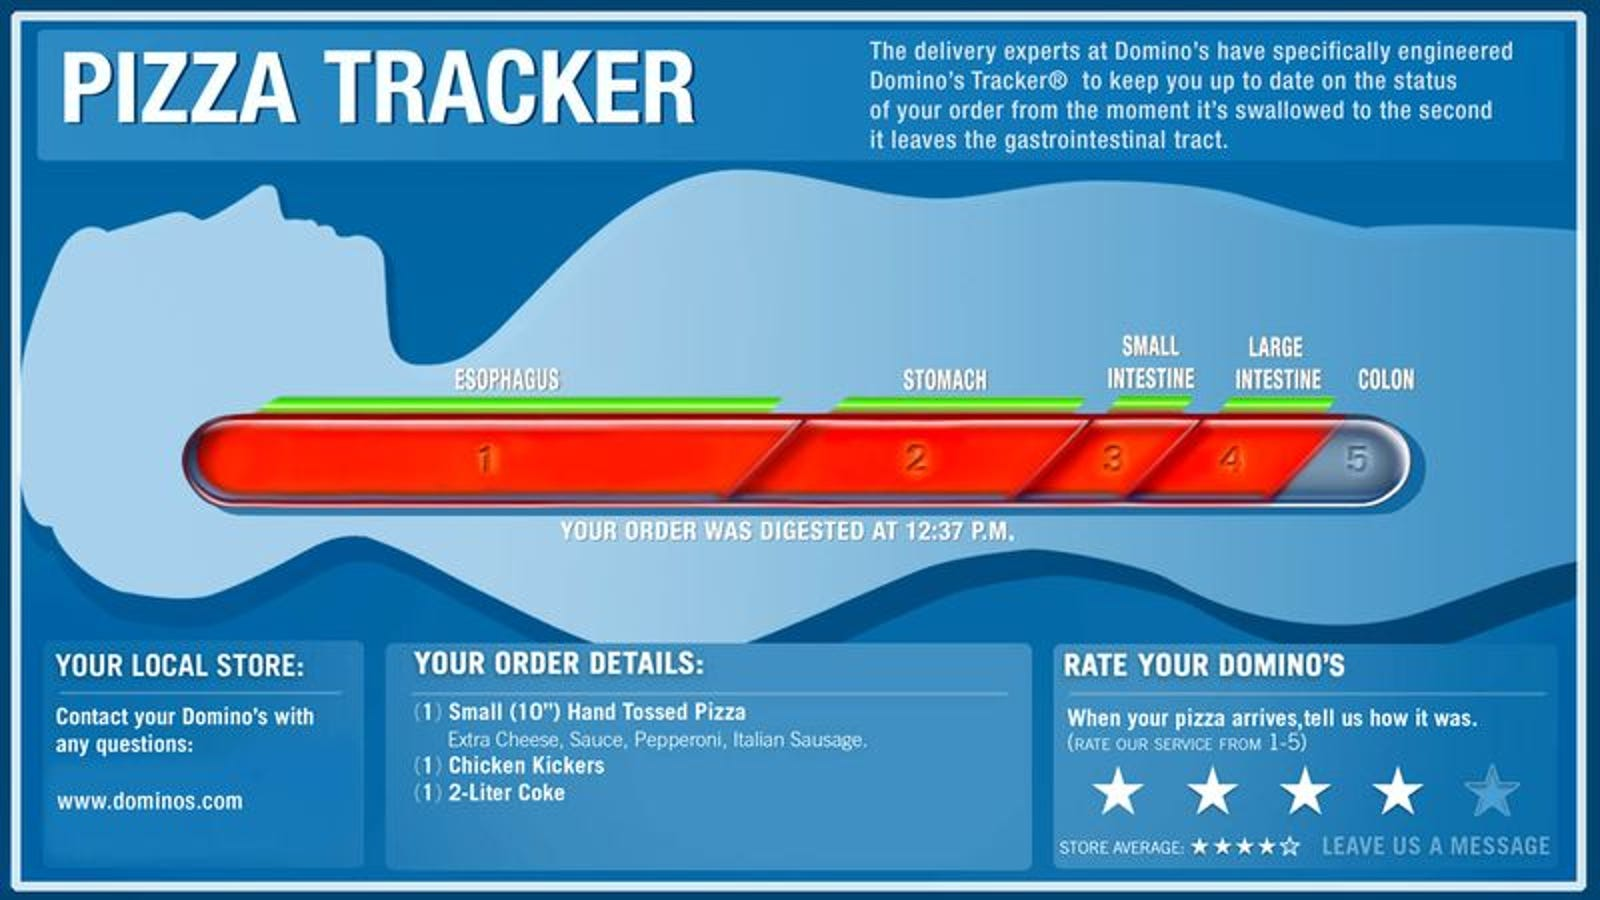 is dominos pizza tracker real